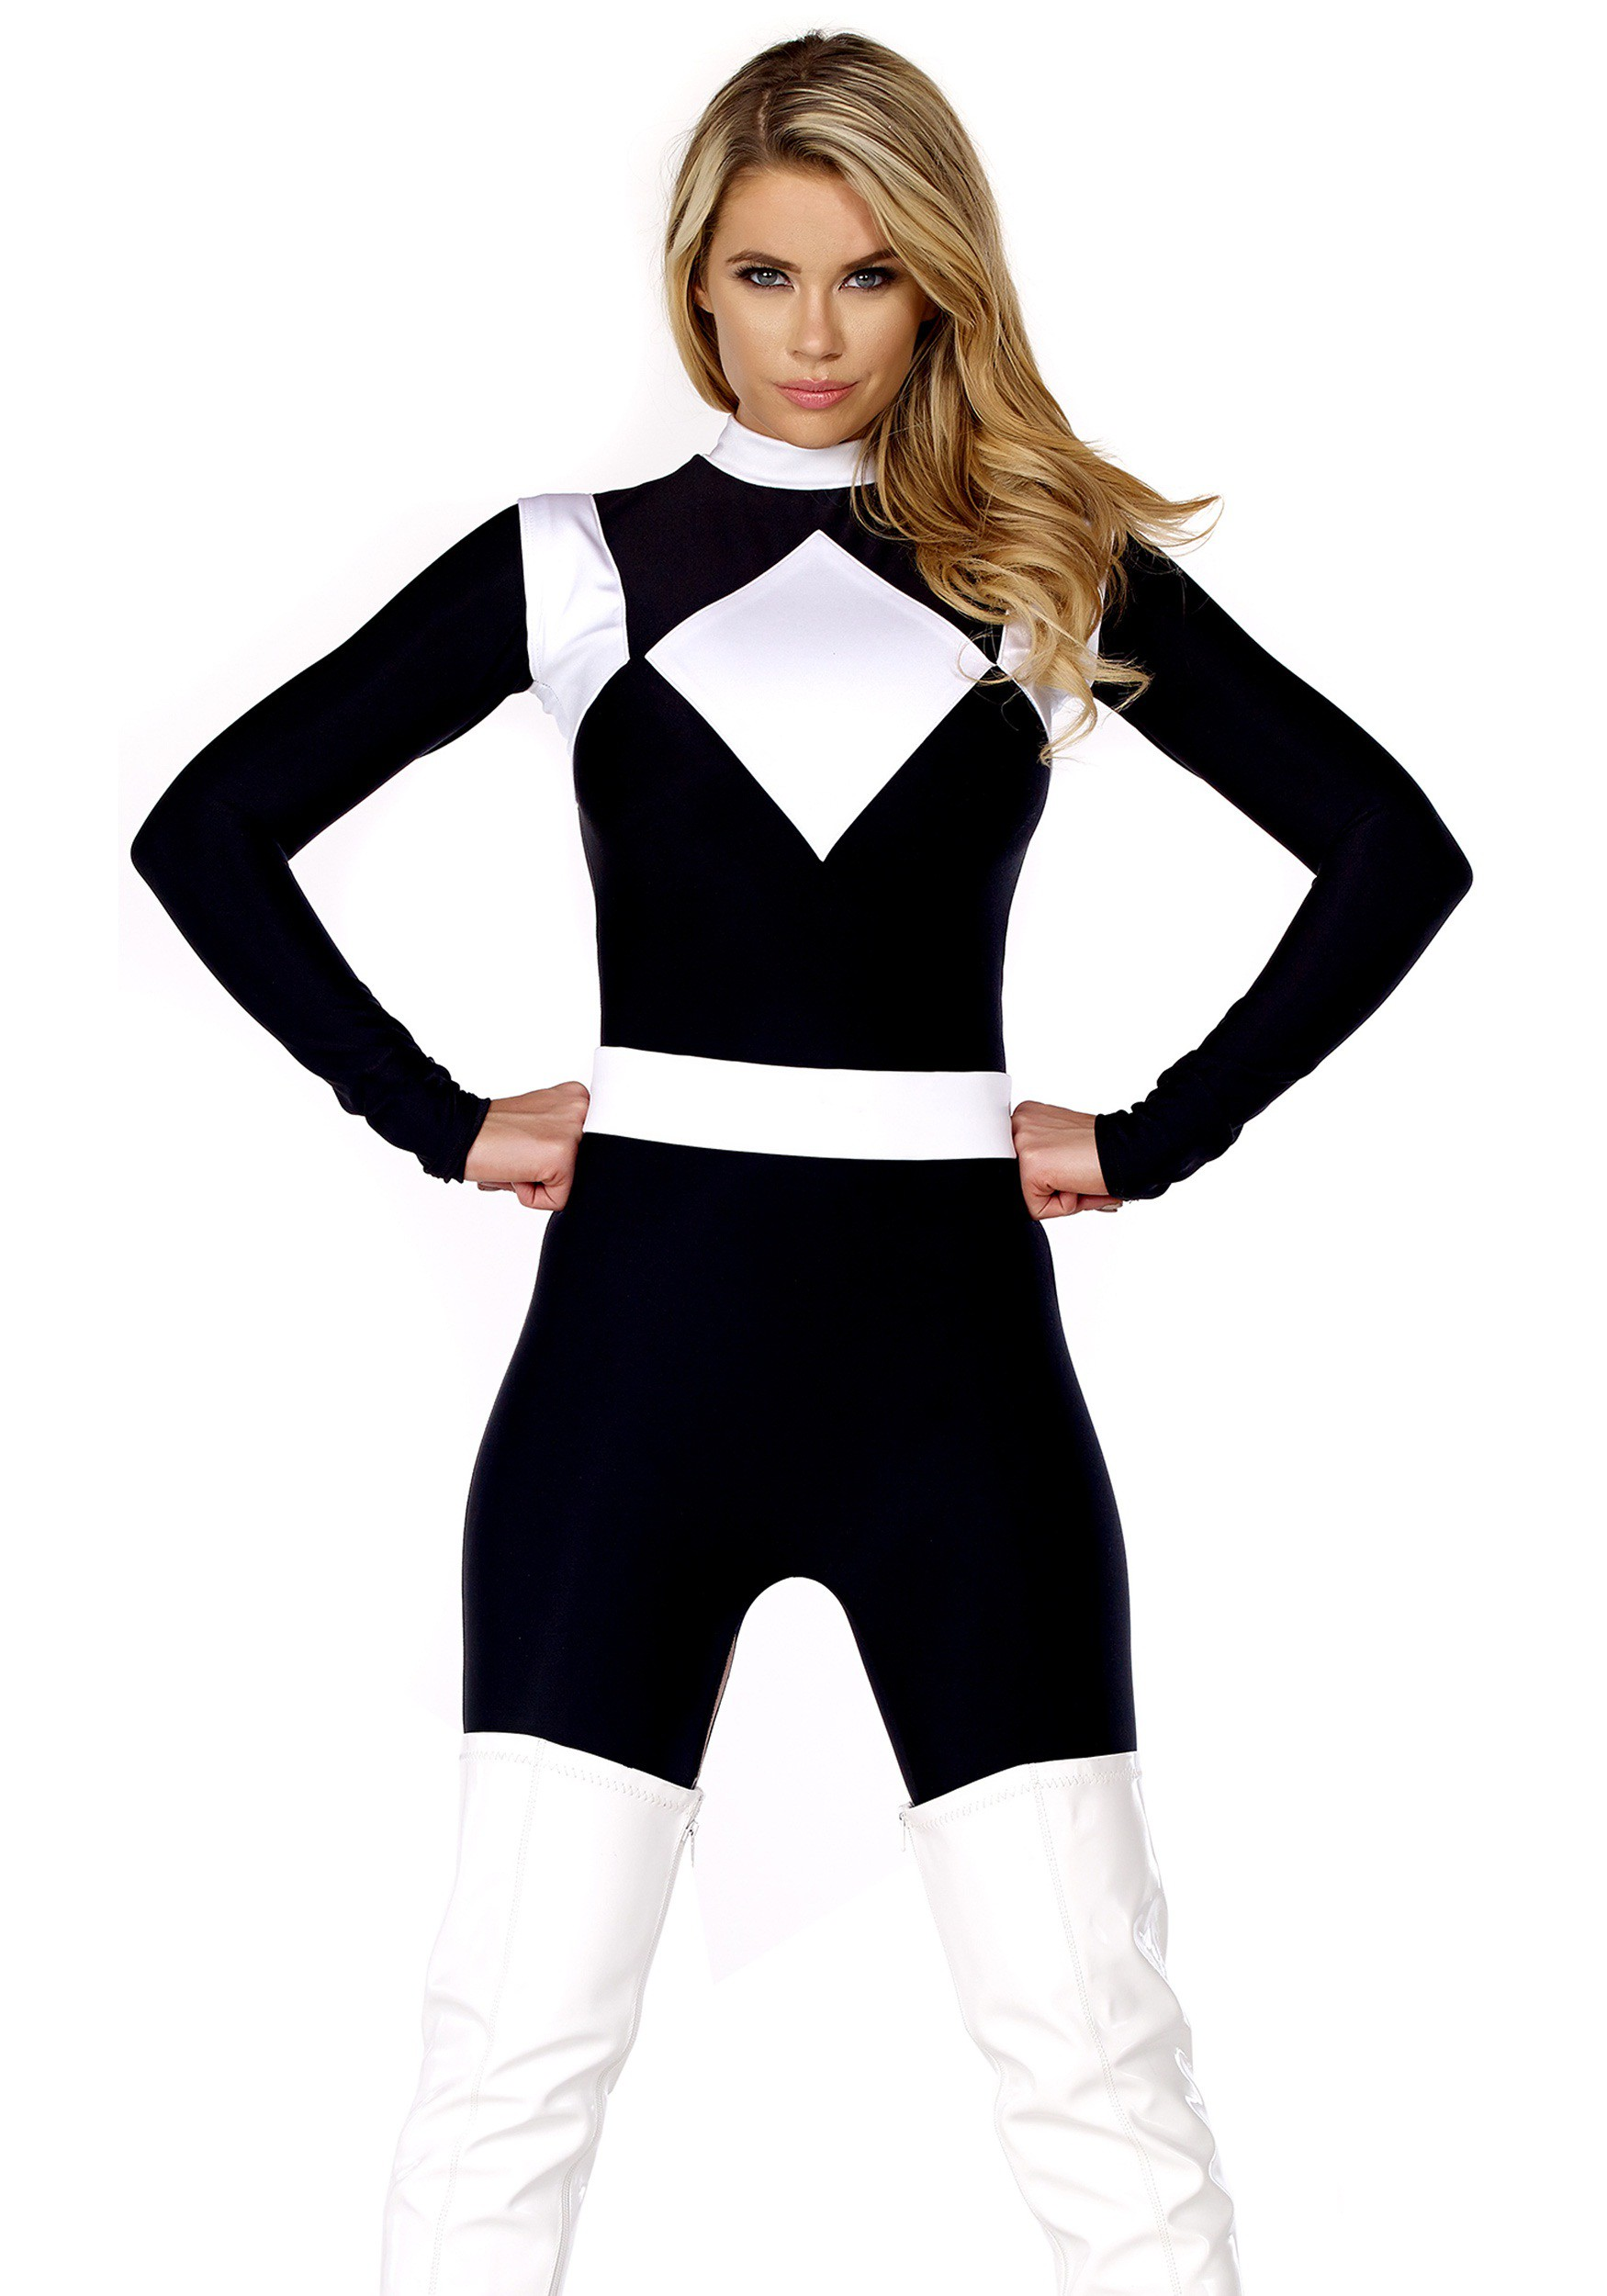 Womenu0027s Vigorous Black Ranger Costume  sc 1 st  Halloween Costumes & Womenu0027s Dominance Action Figure Black Catsuit